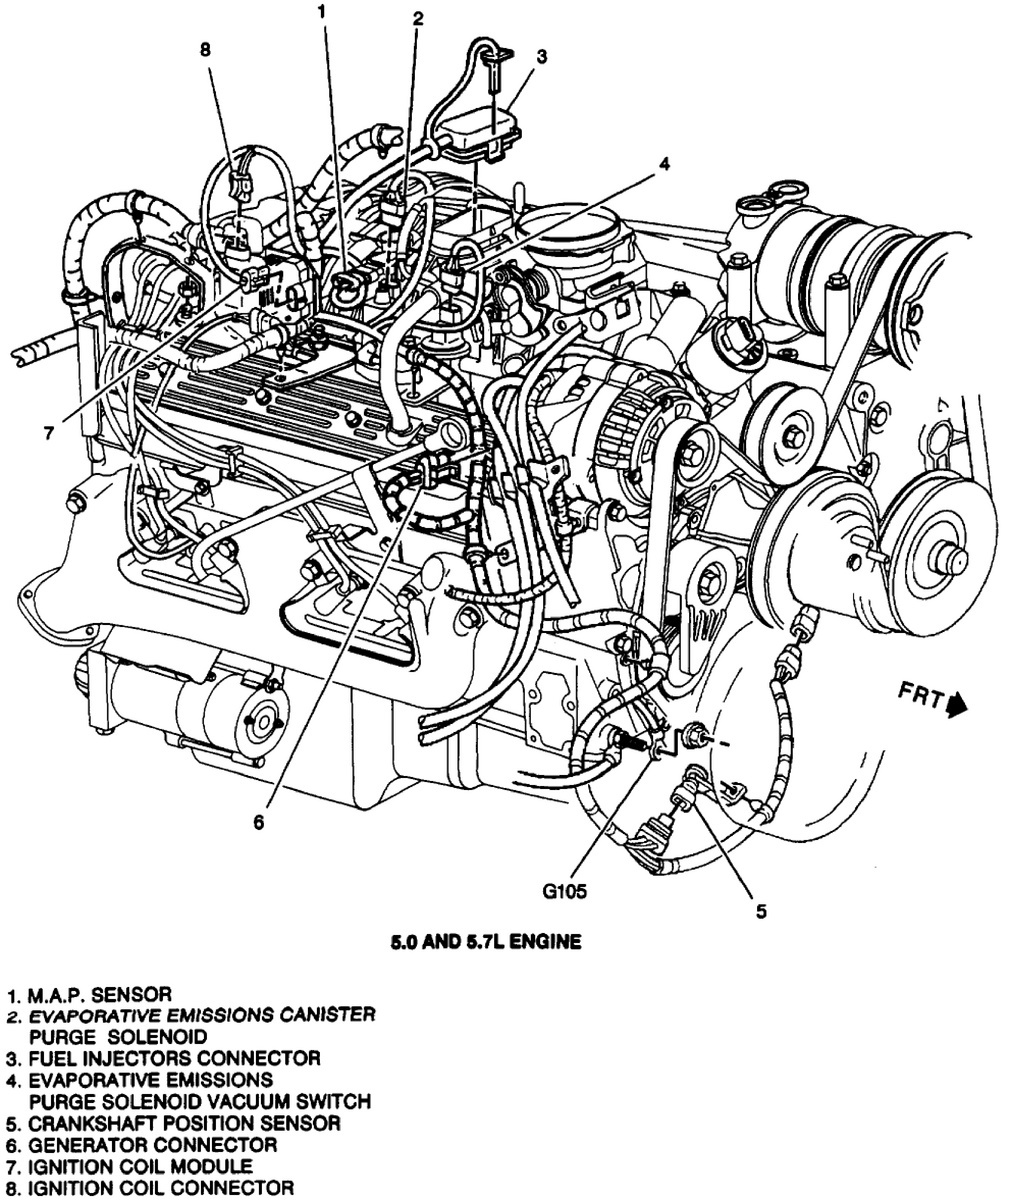 pic 6189694446580346251 1600x1200 chevrolet corsica questions where is crankshaft sensor on chevy 1994 chevy corsica radio wiring diagram at readyjetset.co